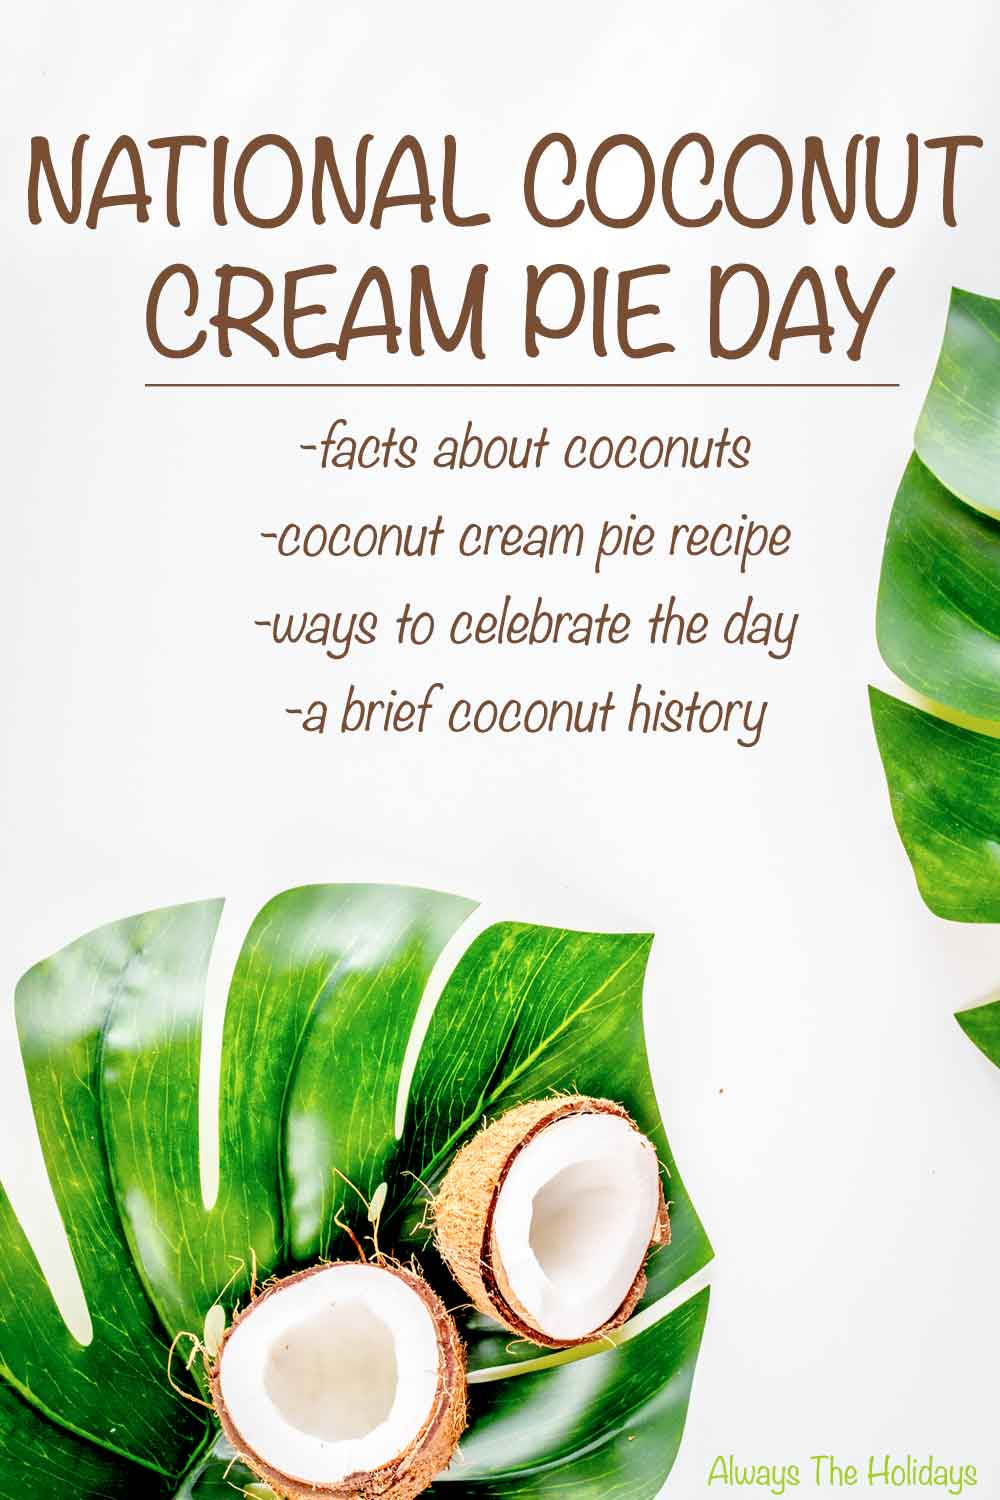 Two halved coconuts on leaves with a text overlay for National Coconut Cream Pie Day announcing a coconut cream pie recipe, and coconut facts.